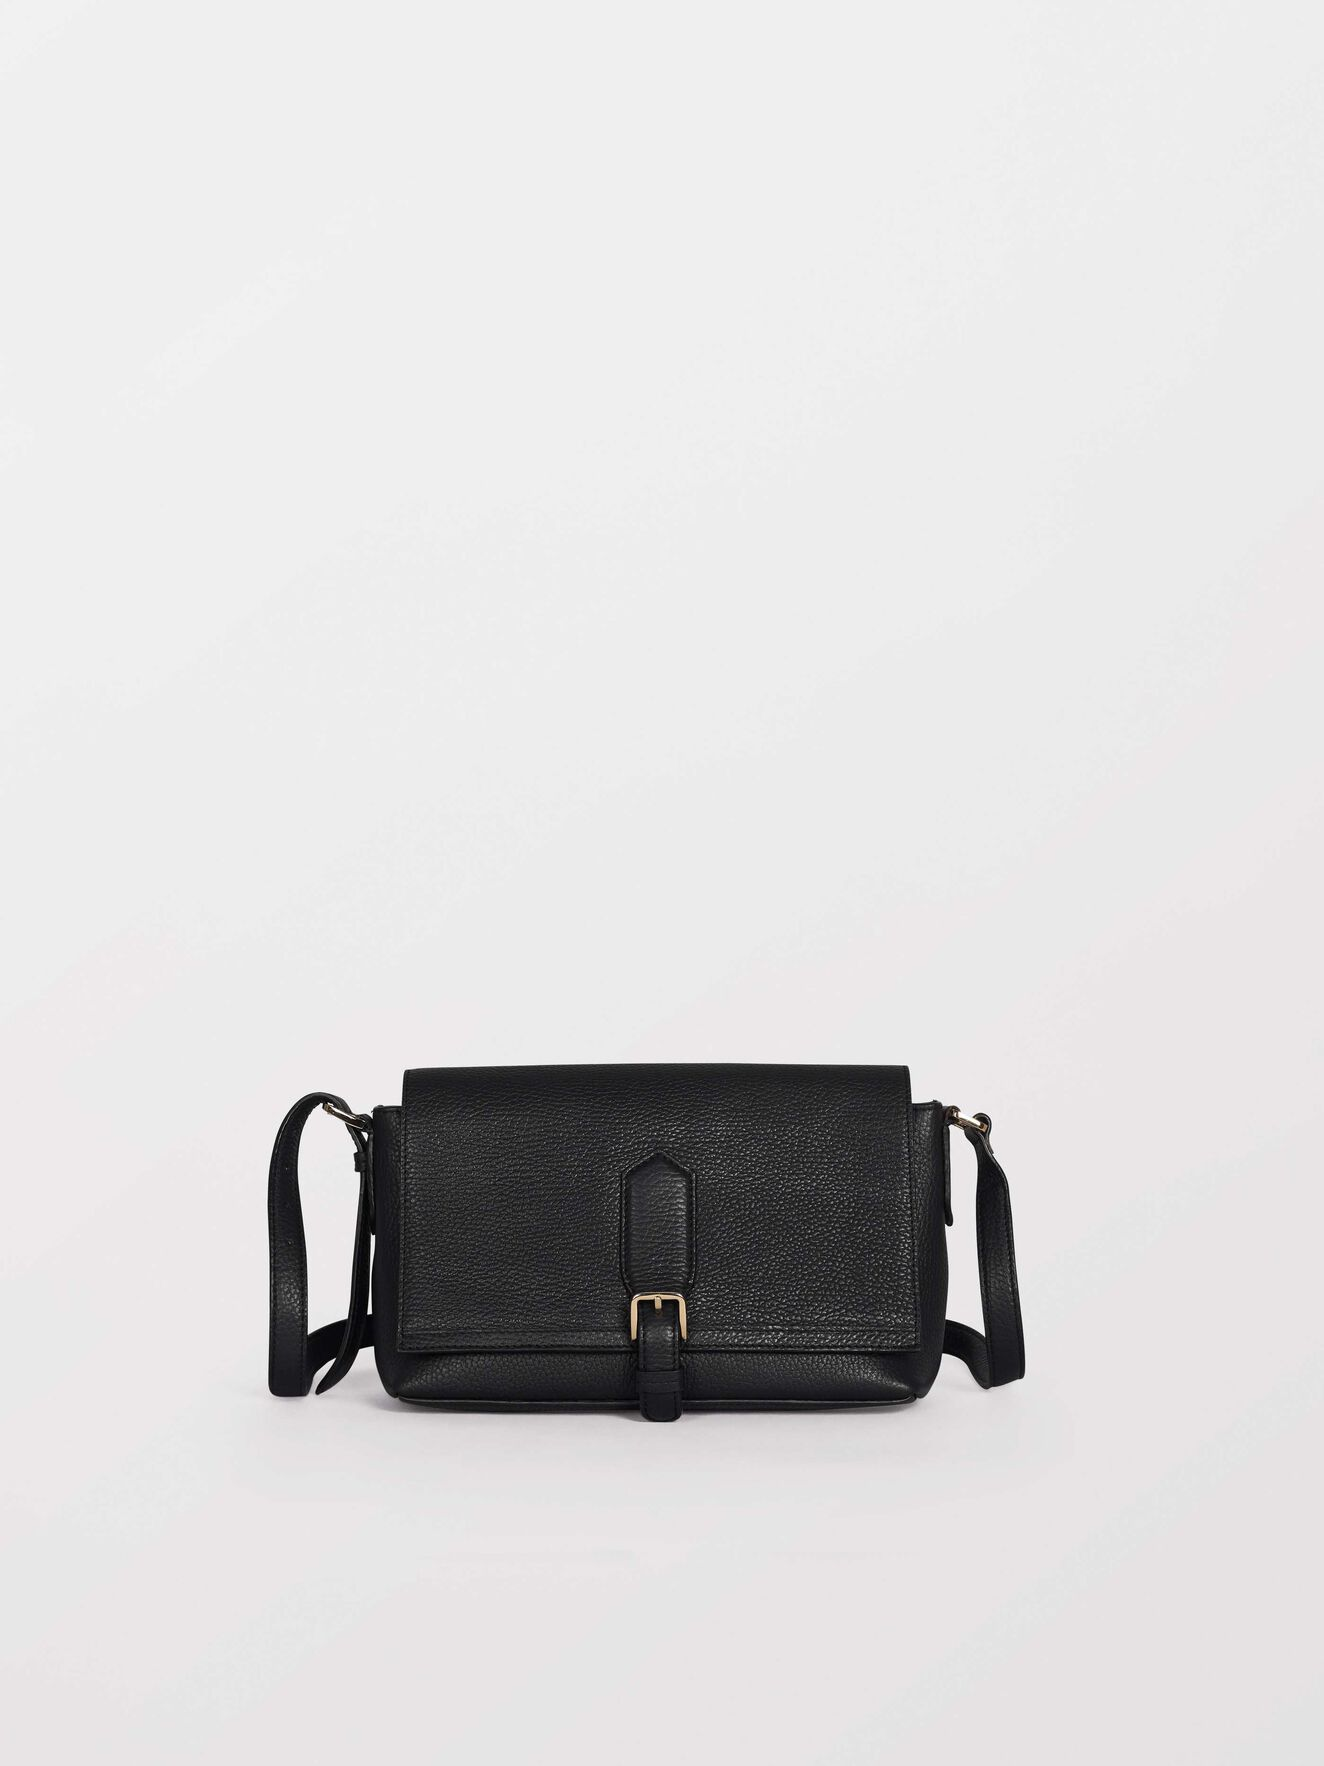 Bonnelli Bag in Black from Tiger of Sweden